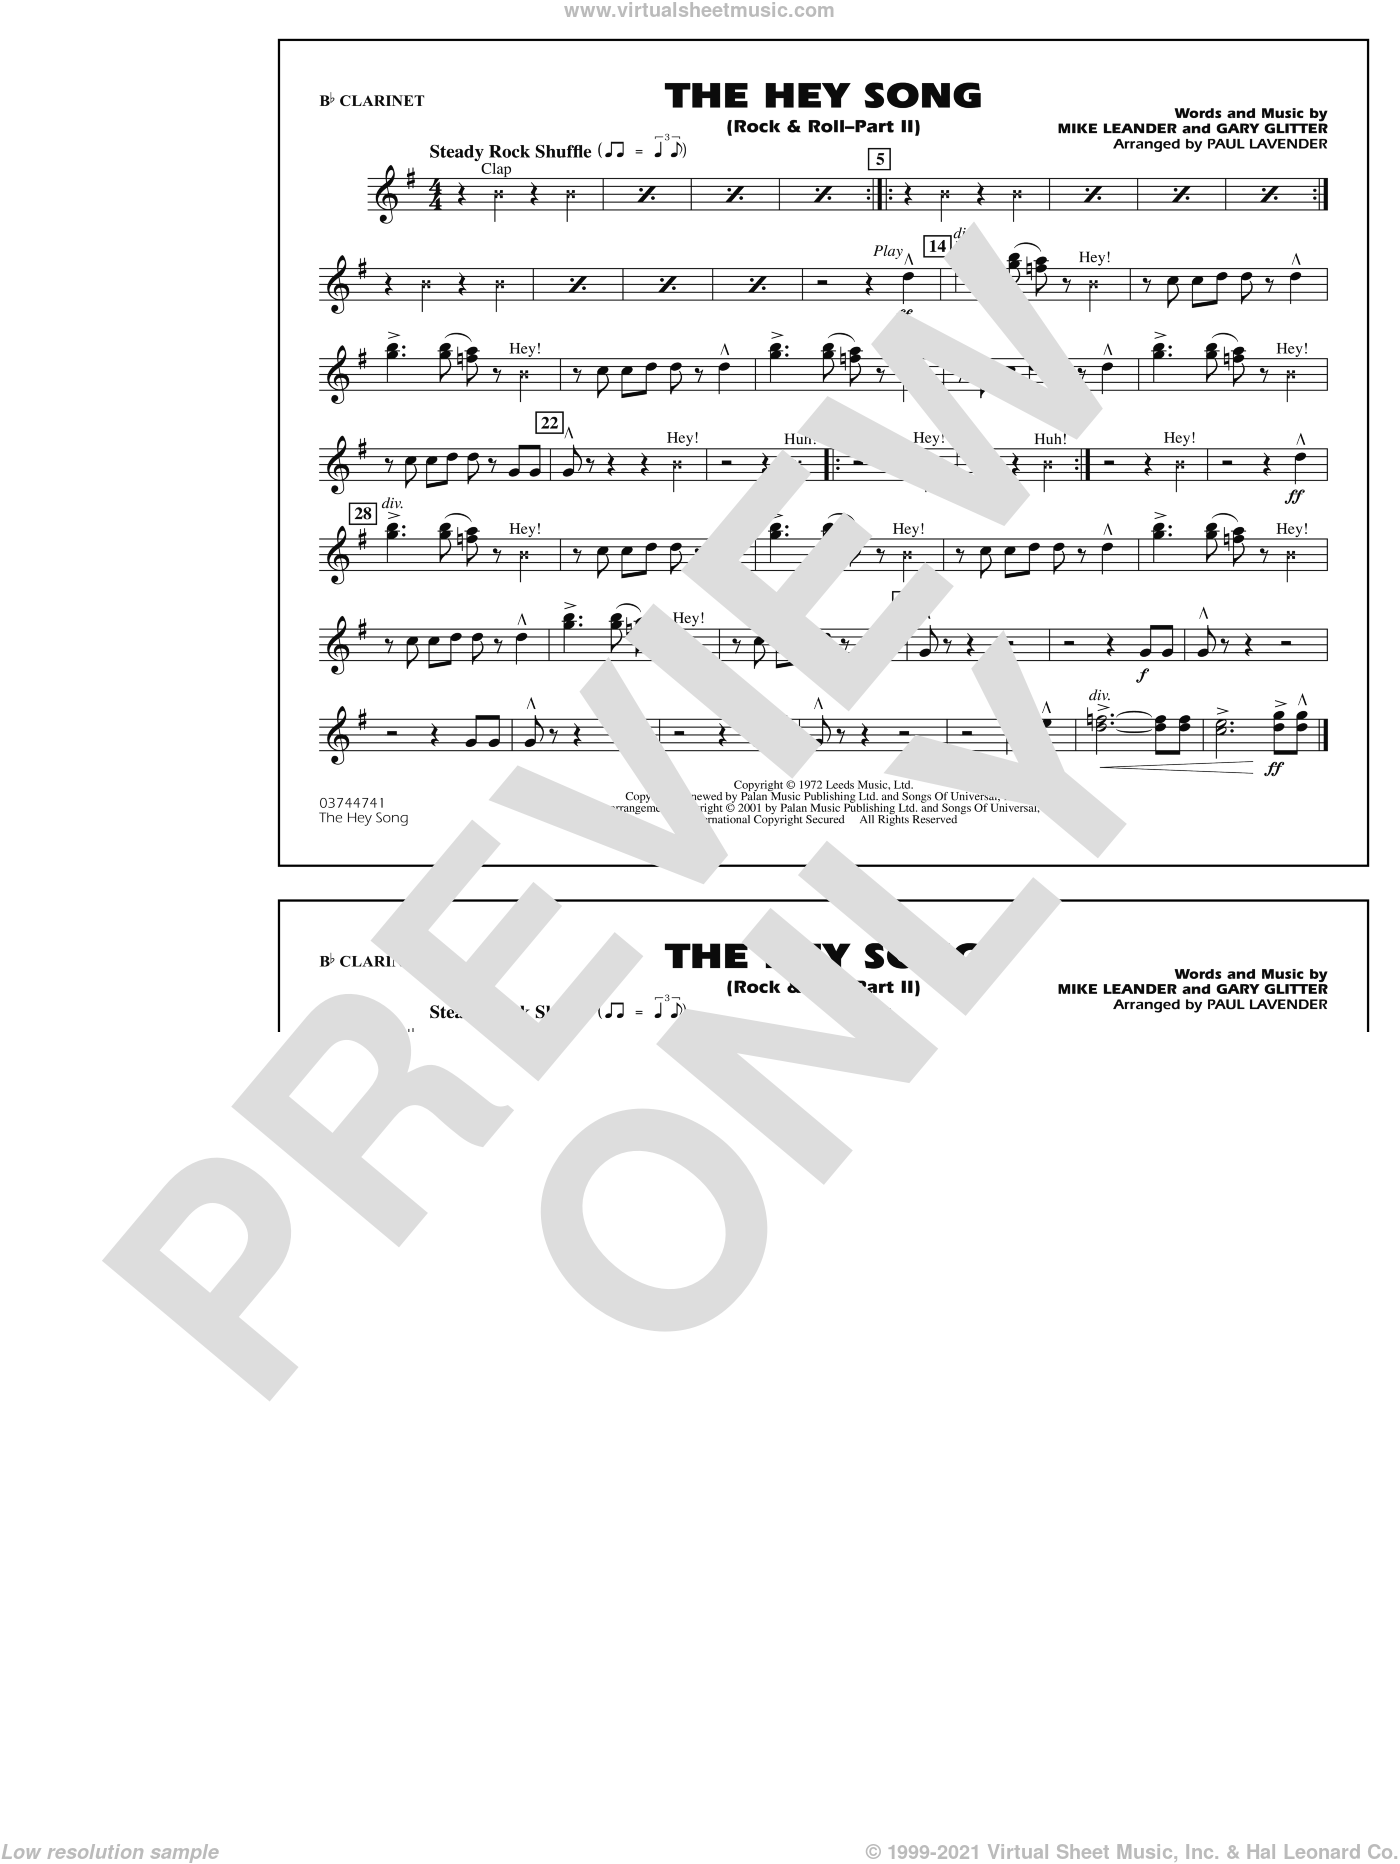 Rock and Roll, part ii (the hey song) sheet music for marching band (Bb clarinet) by Paul Lavender, Mike Leander and Gary Glitter, intermediate skill level